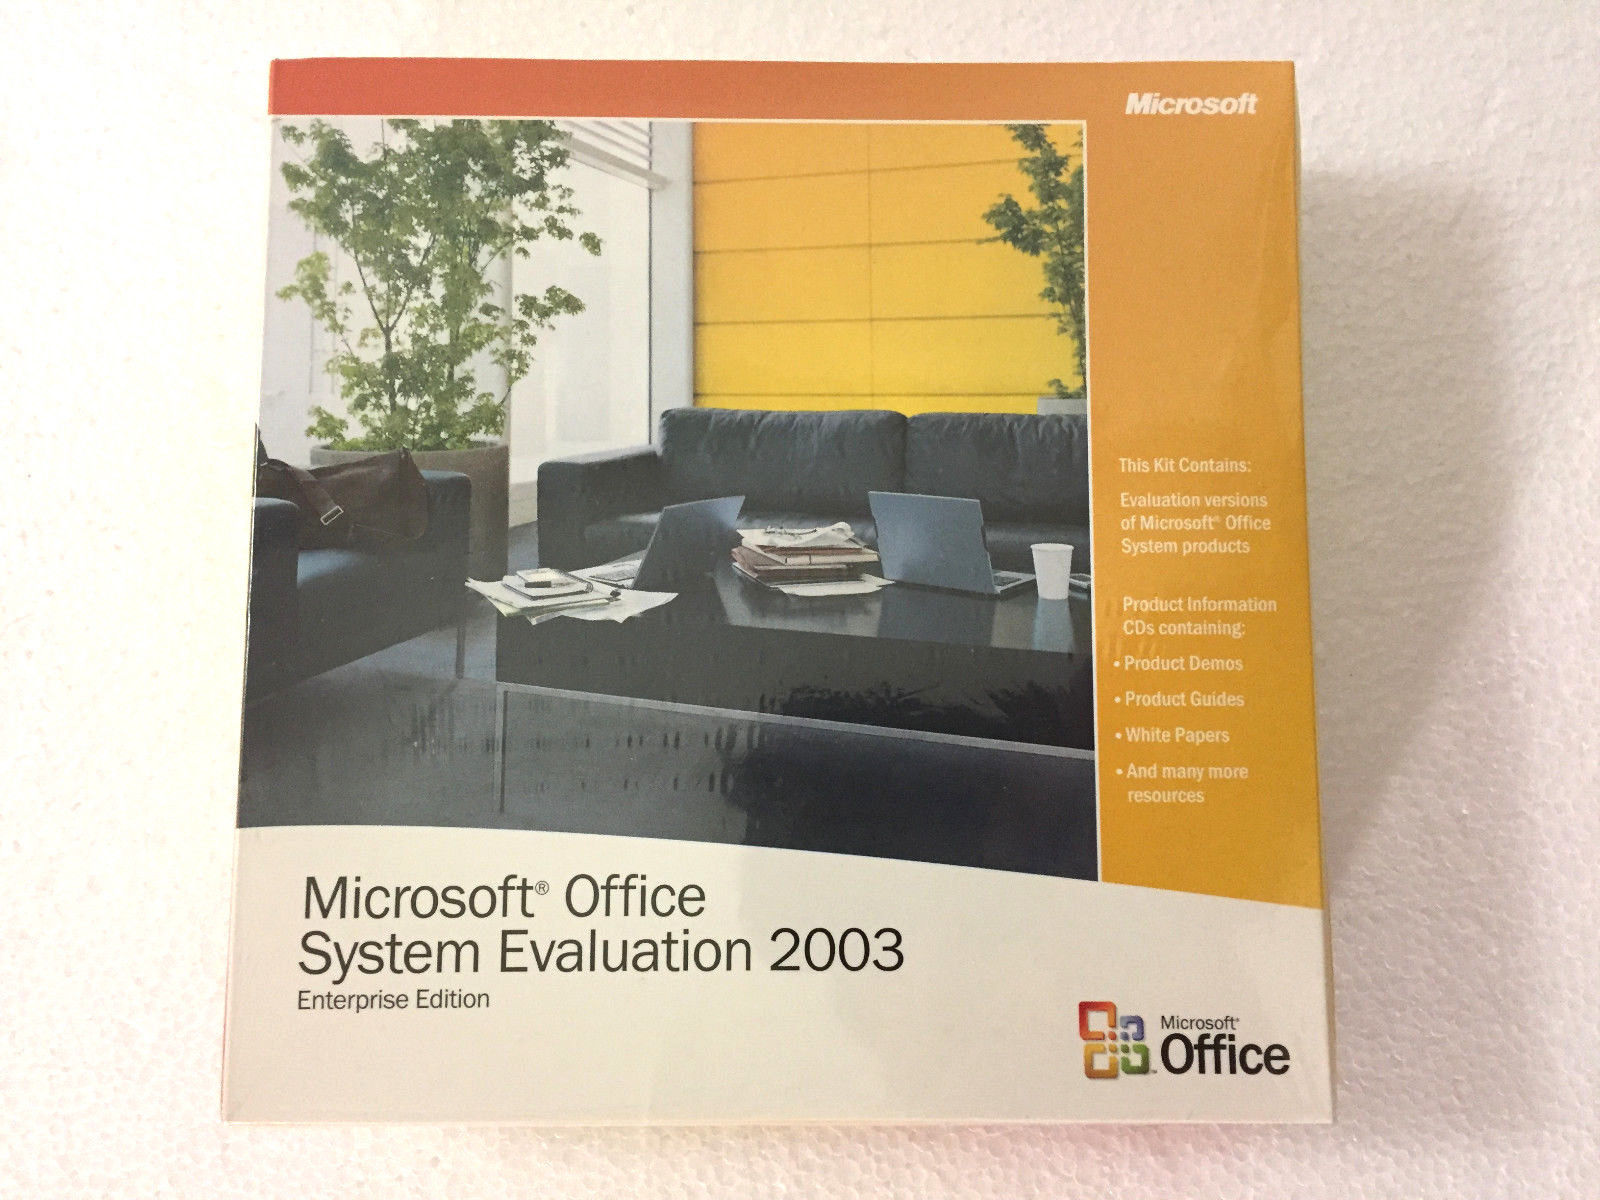 Microsoft Office System Evaluation 2003 Enterprise Edition, Sealed CD